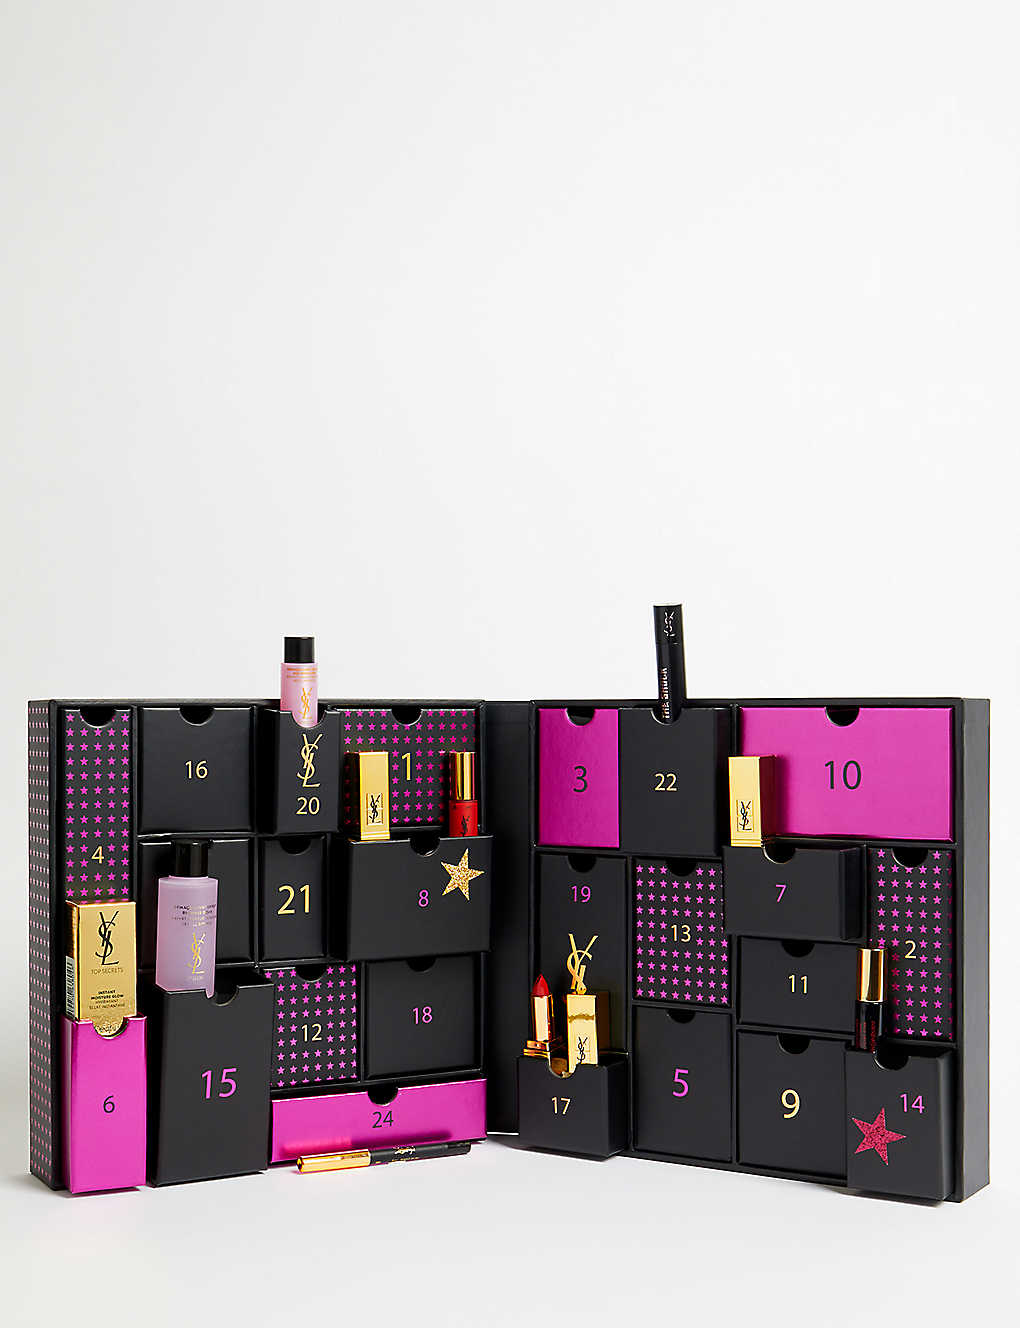 £195YVES SAINT LAURENT Beauty Advent Calendar 2019 @ Selfridges